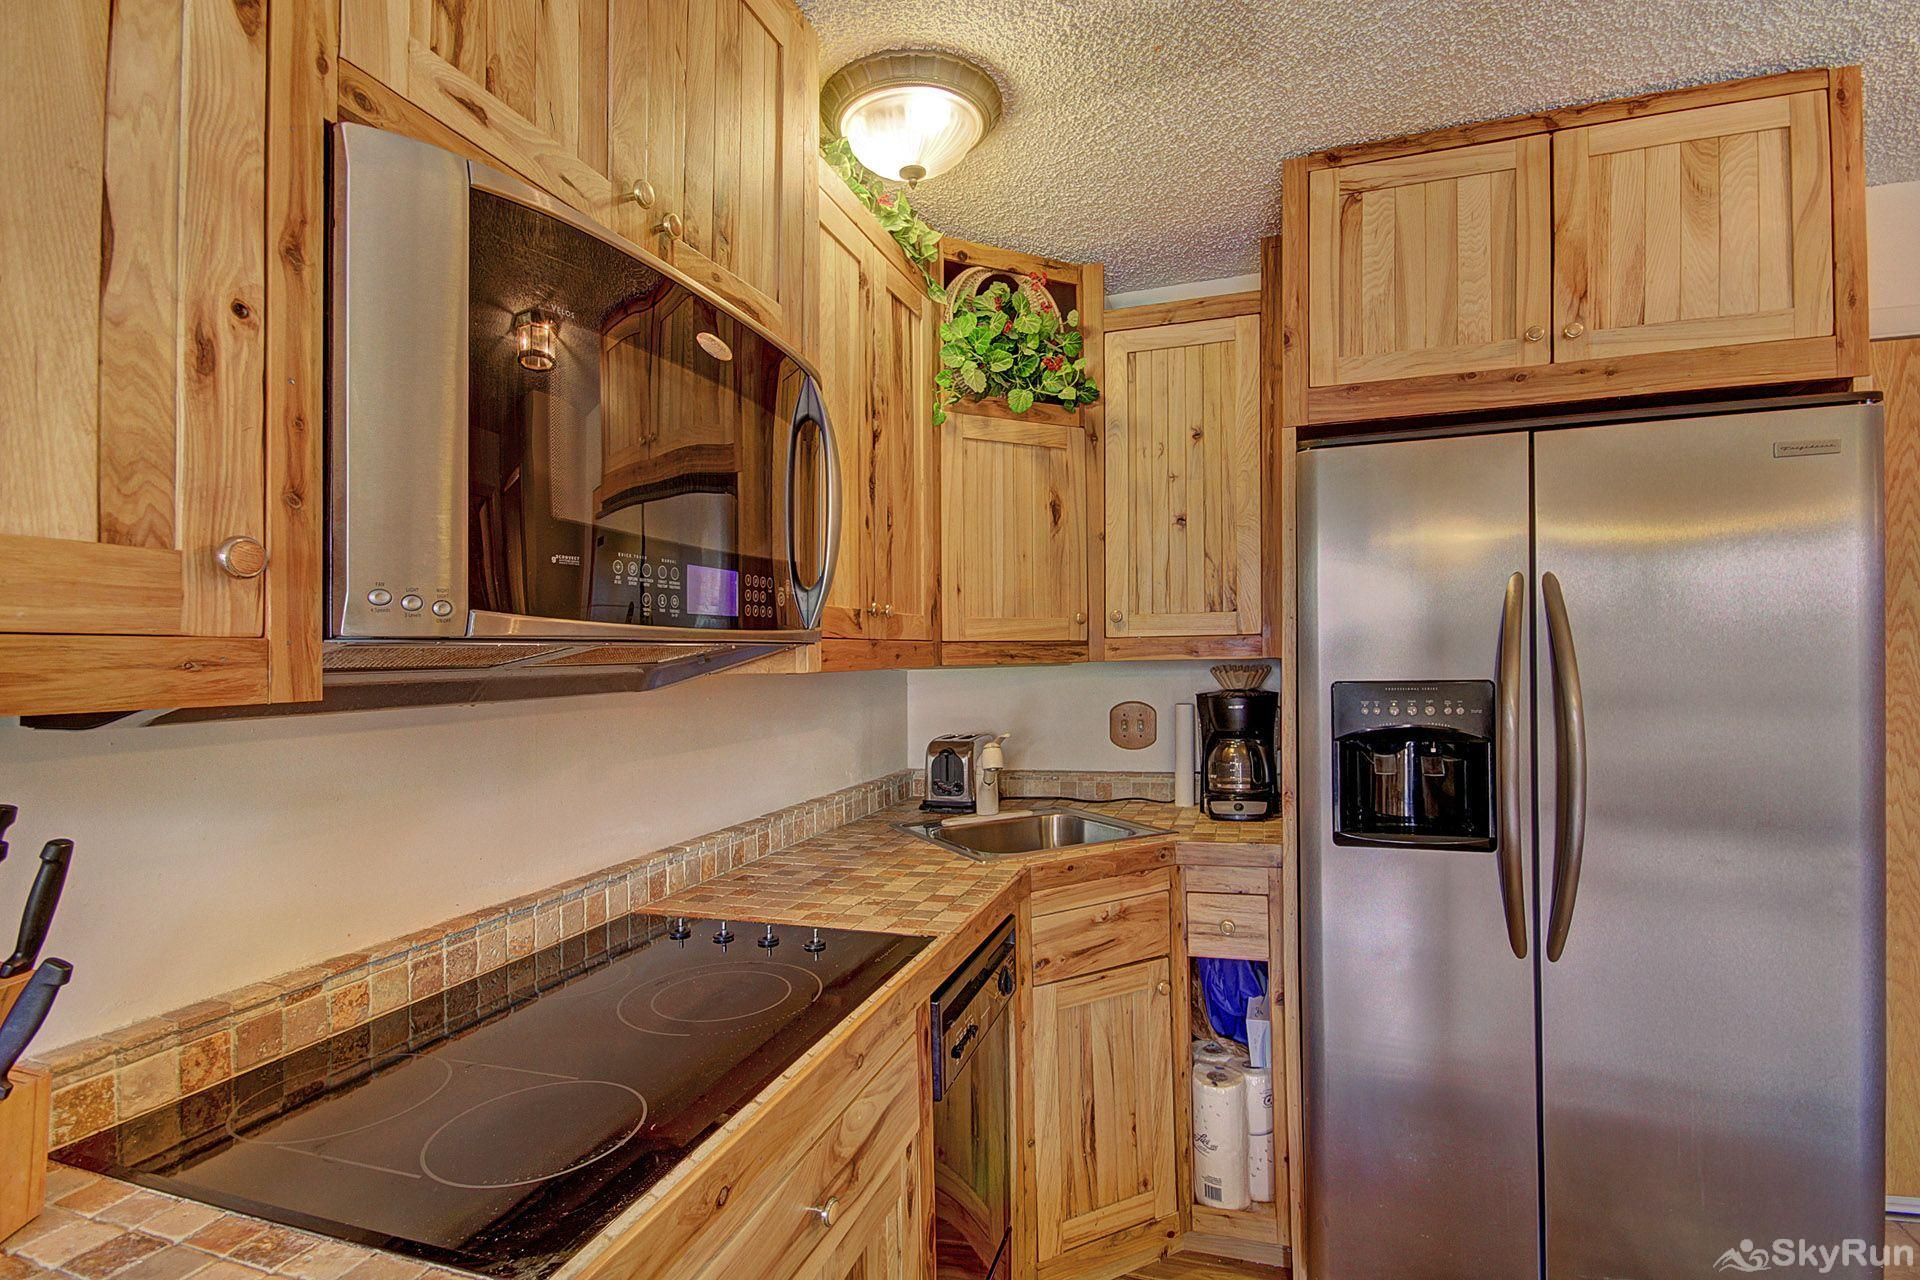 Storm Meadows East E31 Microwave, stove, toaster, coffee maker, fridge...